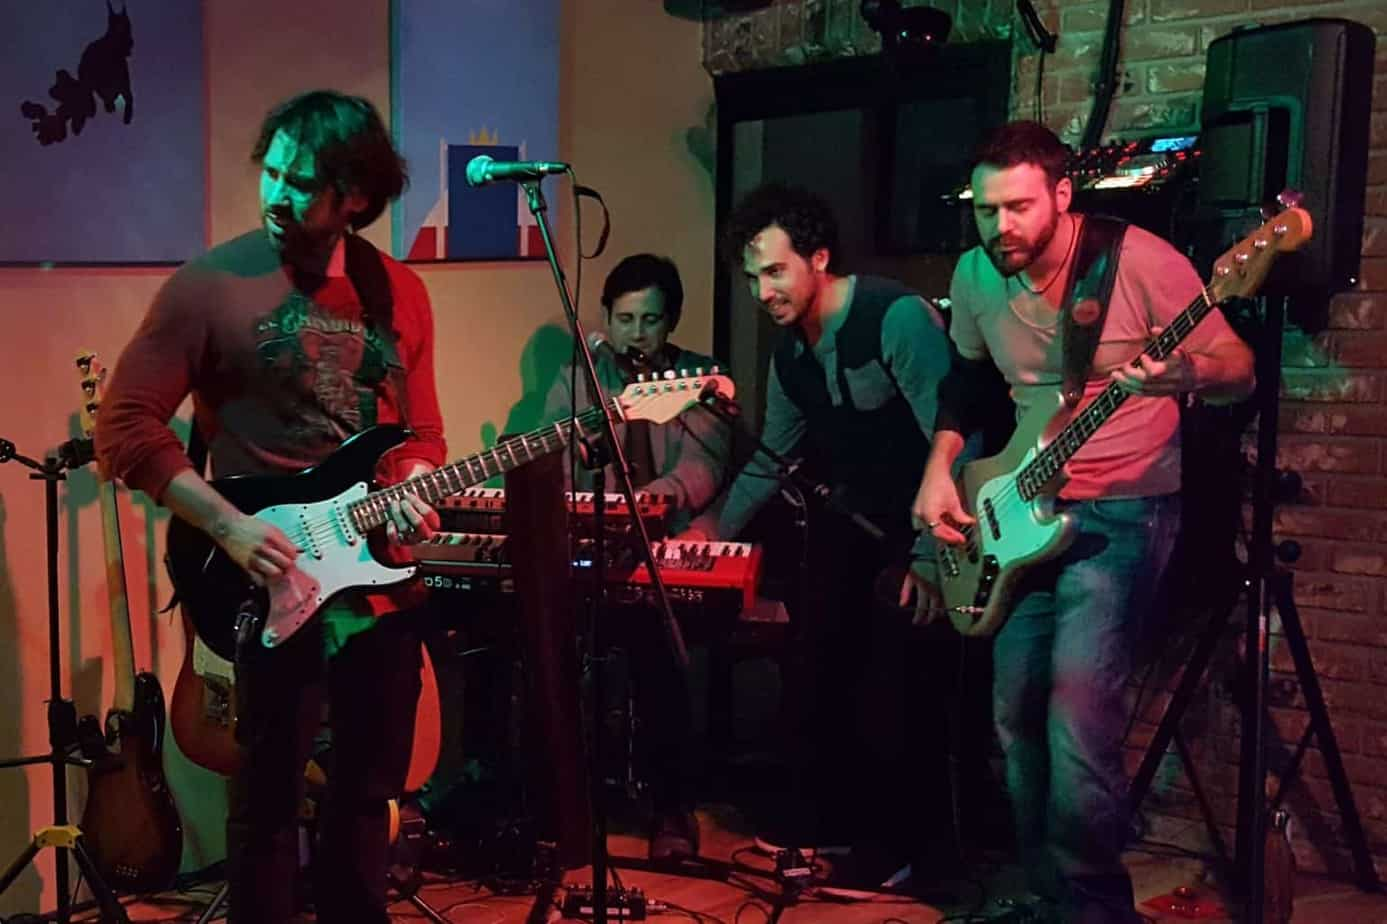 The Kinected at the TideHouse